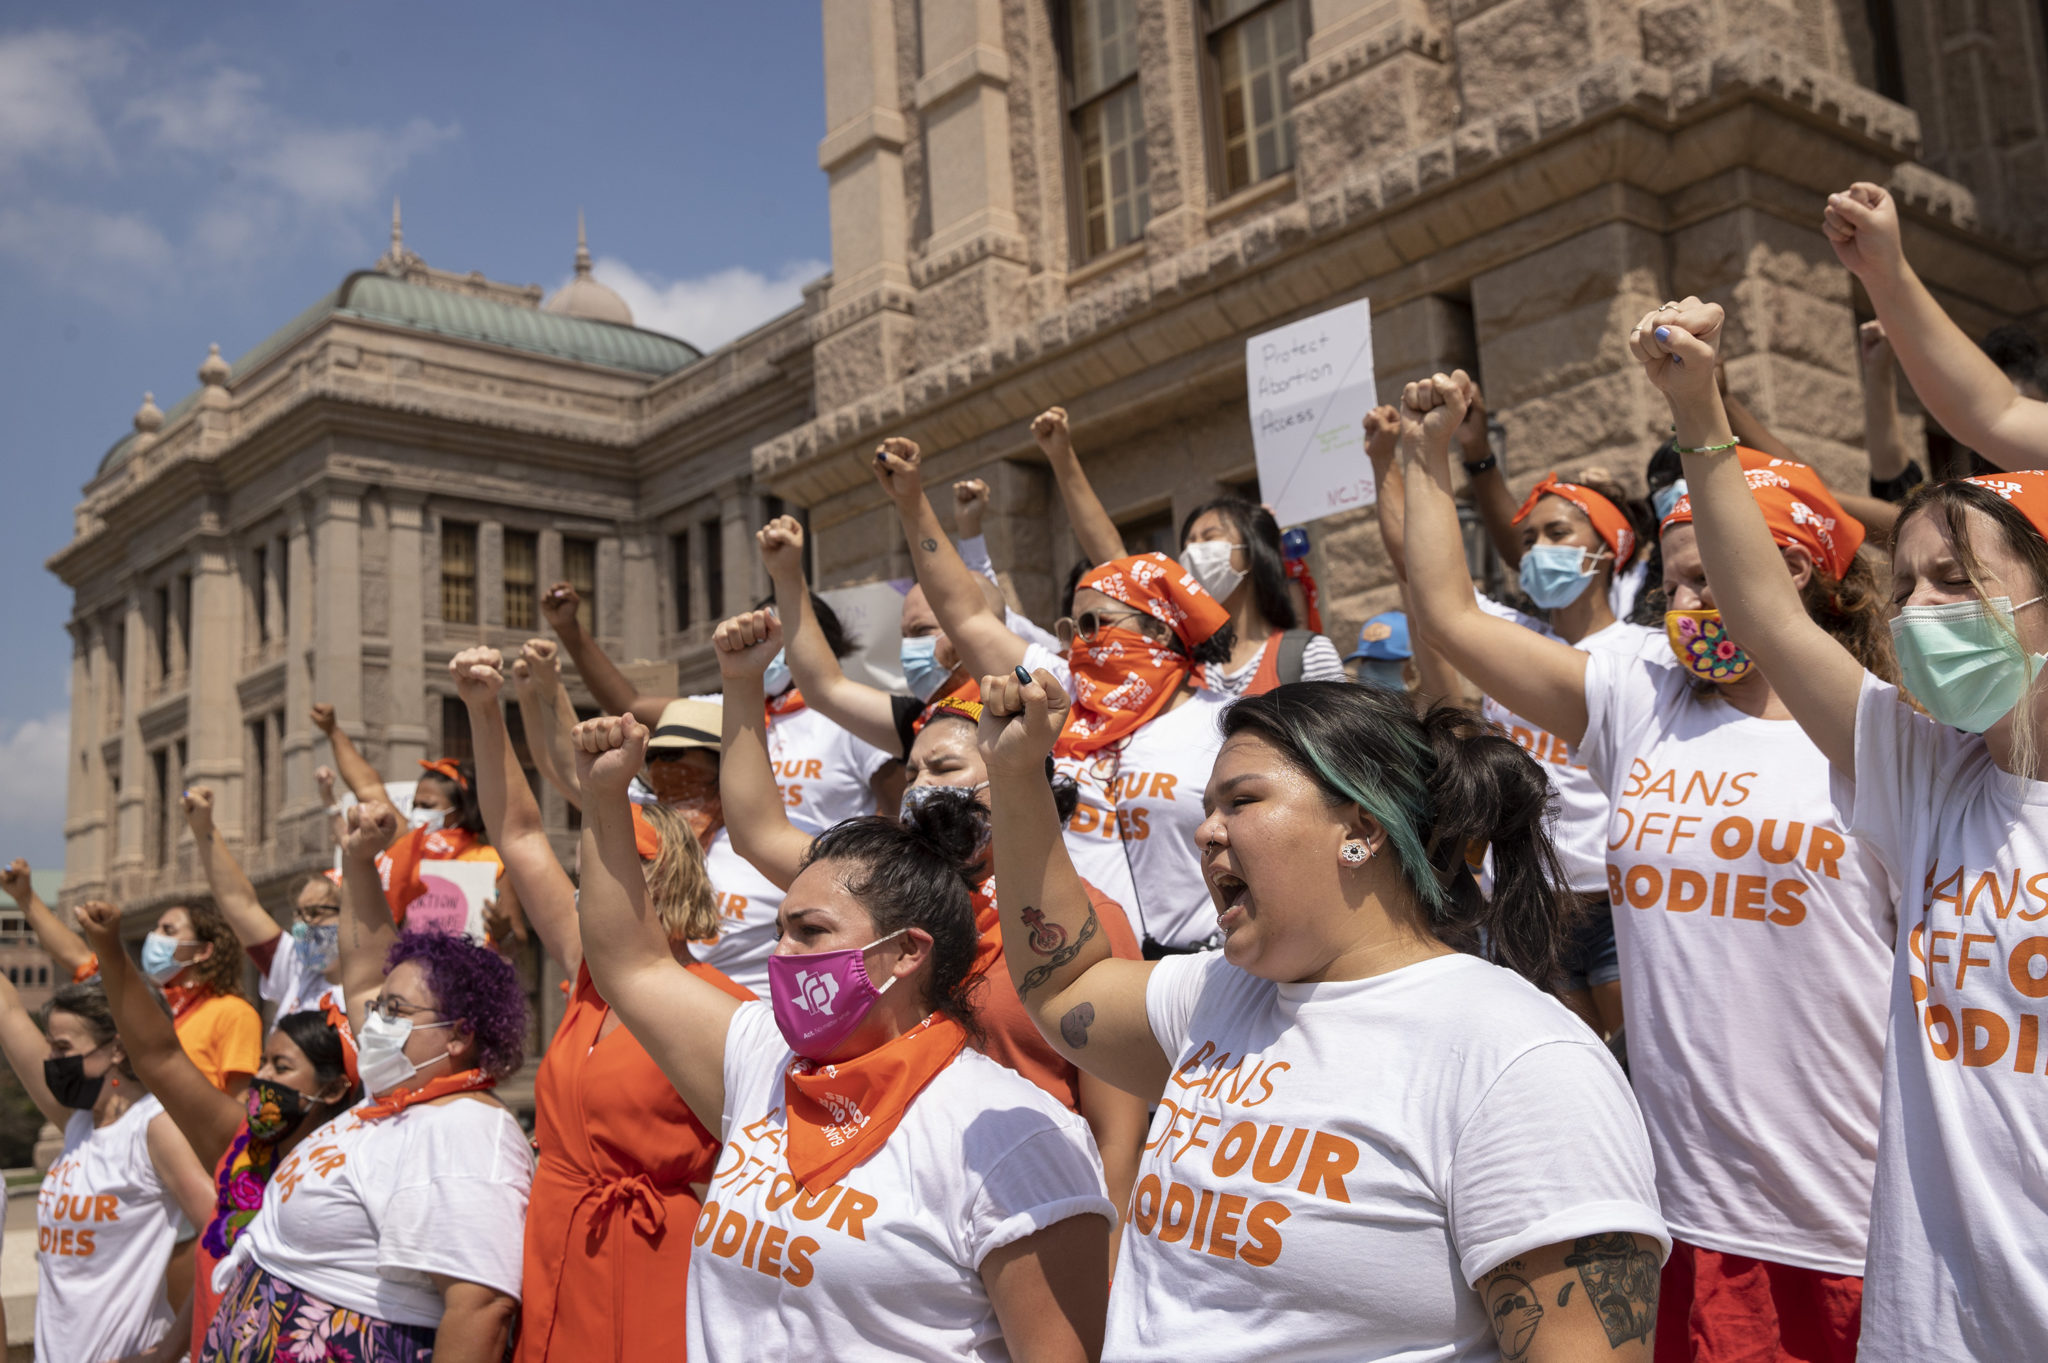 Women protest against the six-week abortion ban at the Capitol in Austin, Texas